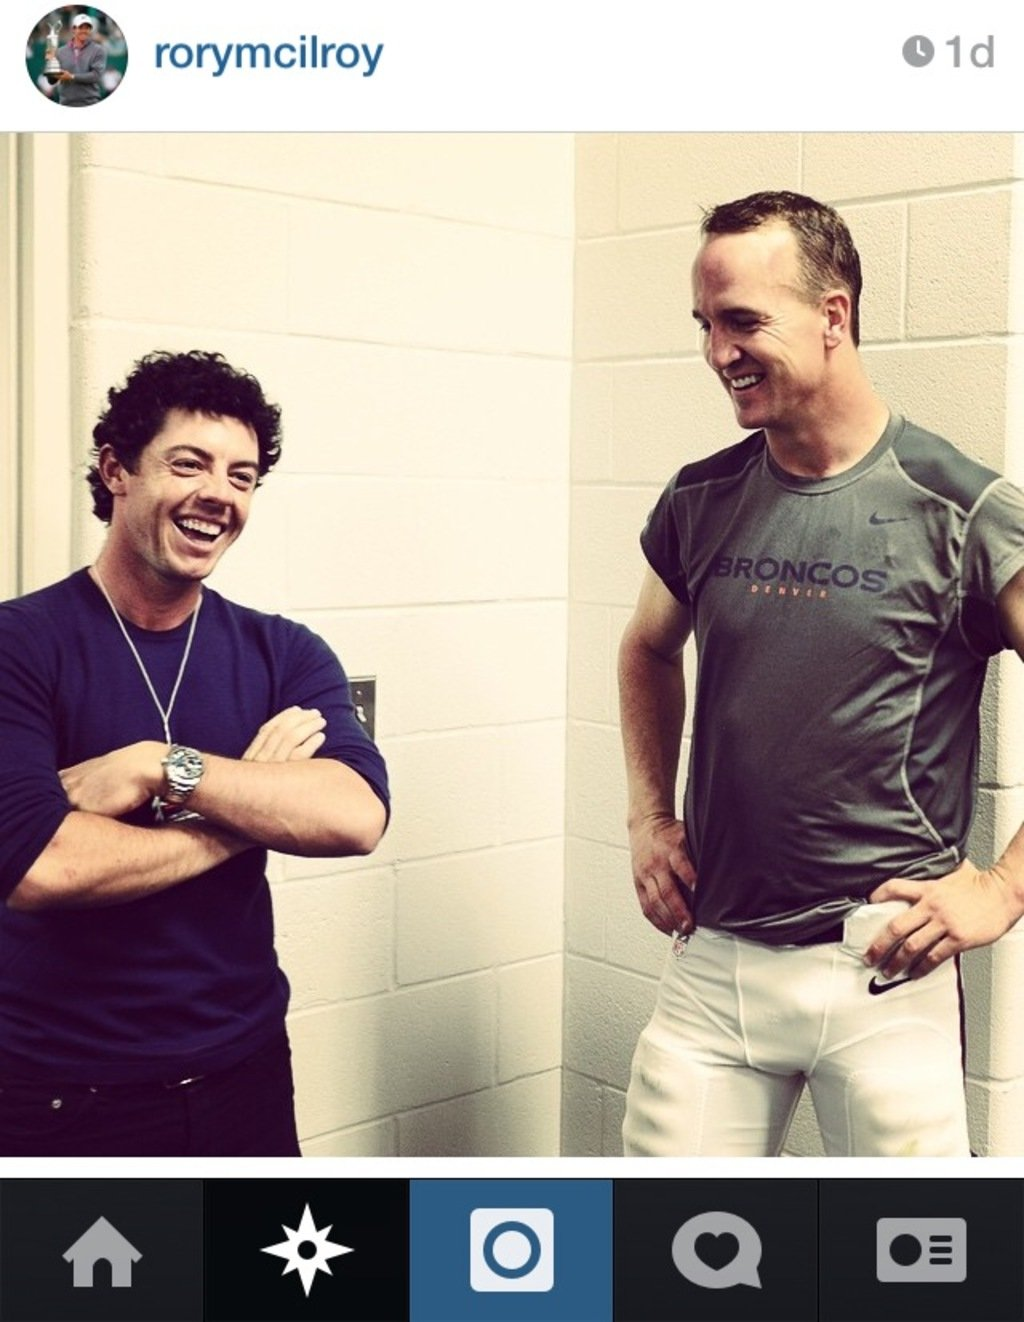 Rory McIlroy Instagrammed a photo with Peyton Manning after the tournament ended Sunday. @rorymcilroy